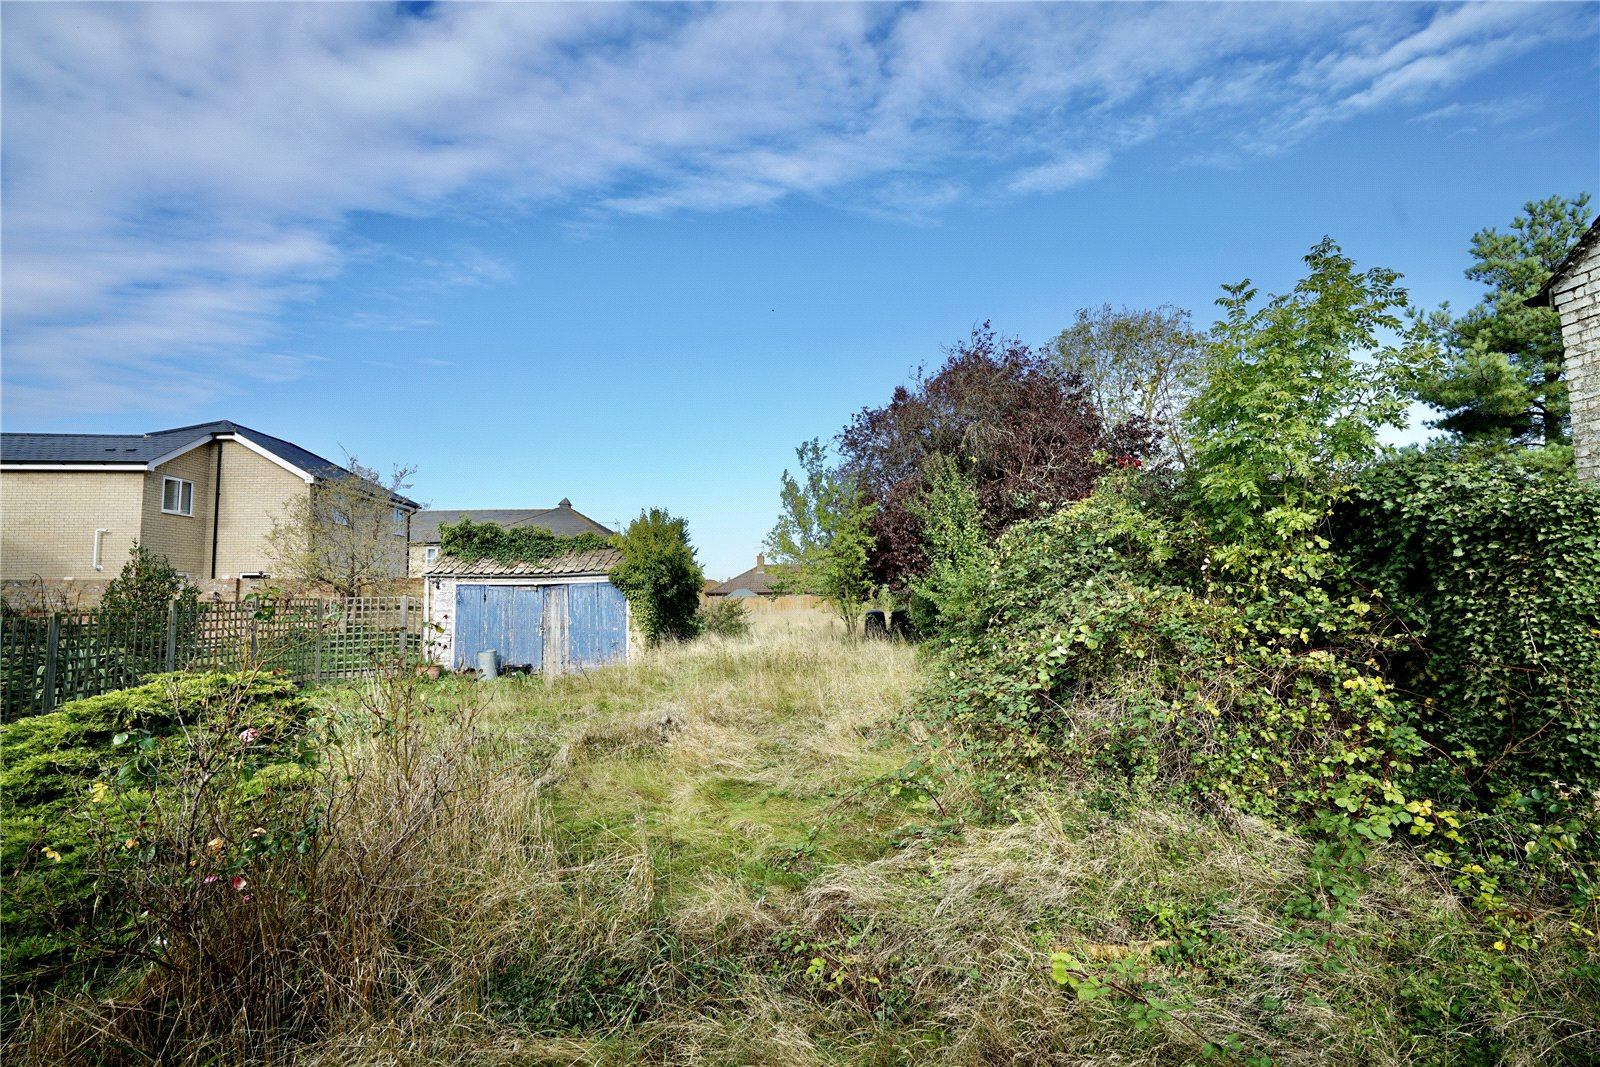 Land (residential) for sale in Sutton, CB6 2RB  - Property Image 6